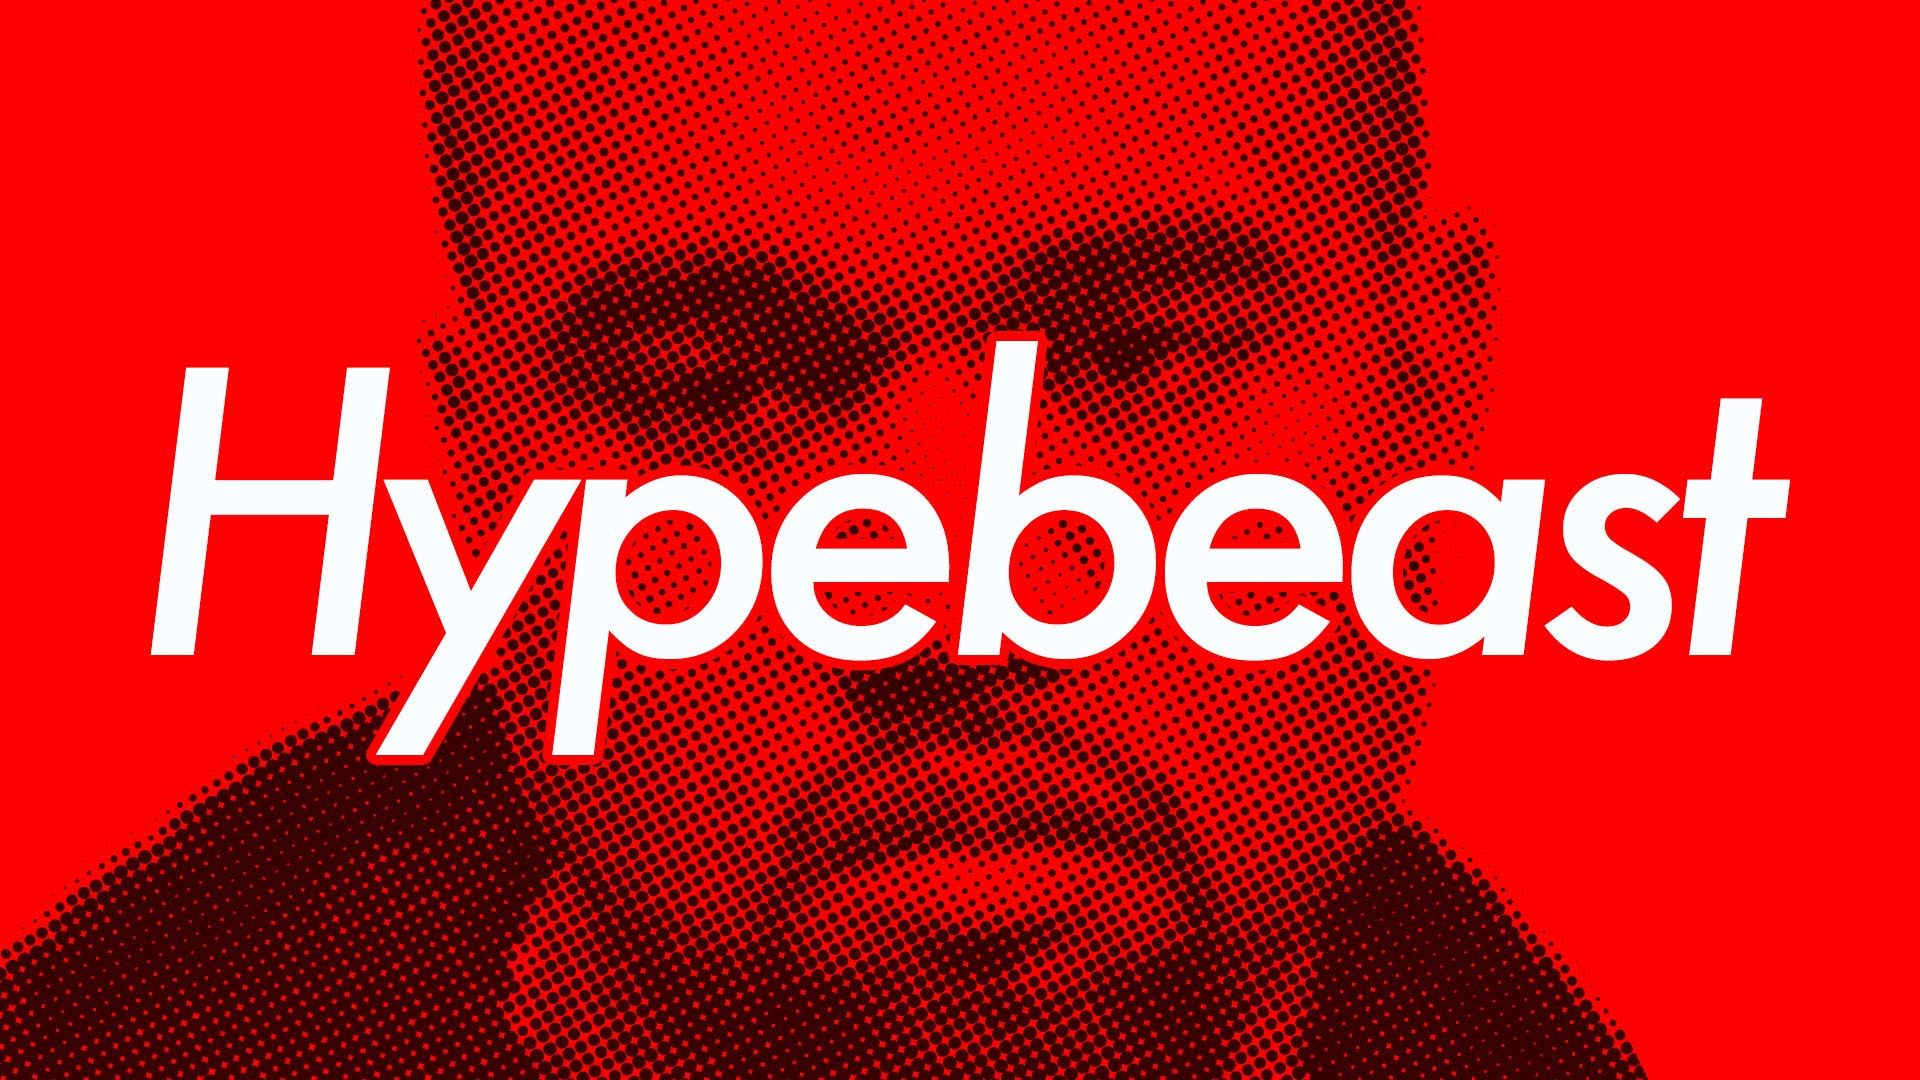 100+ Hypebeast wallpaper That Will Make You Go Wow